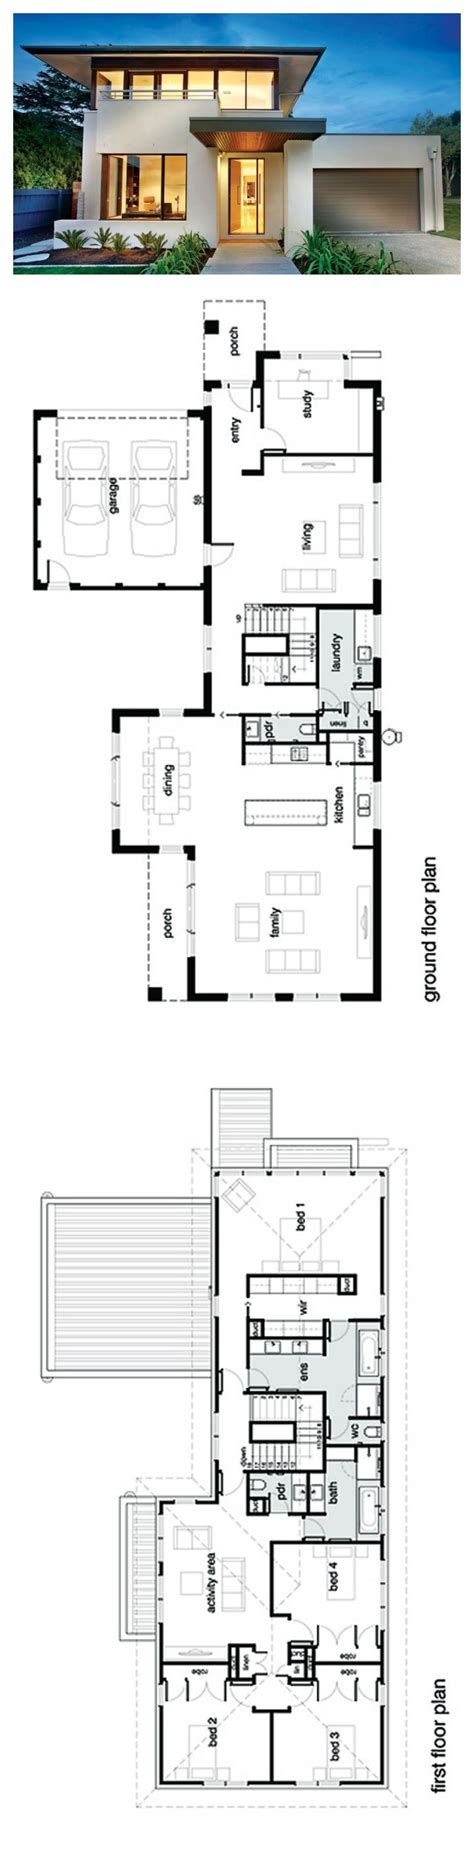 floor plans for modern houses the 25 best ideas about modern house plans on pinterest modern house floor plans